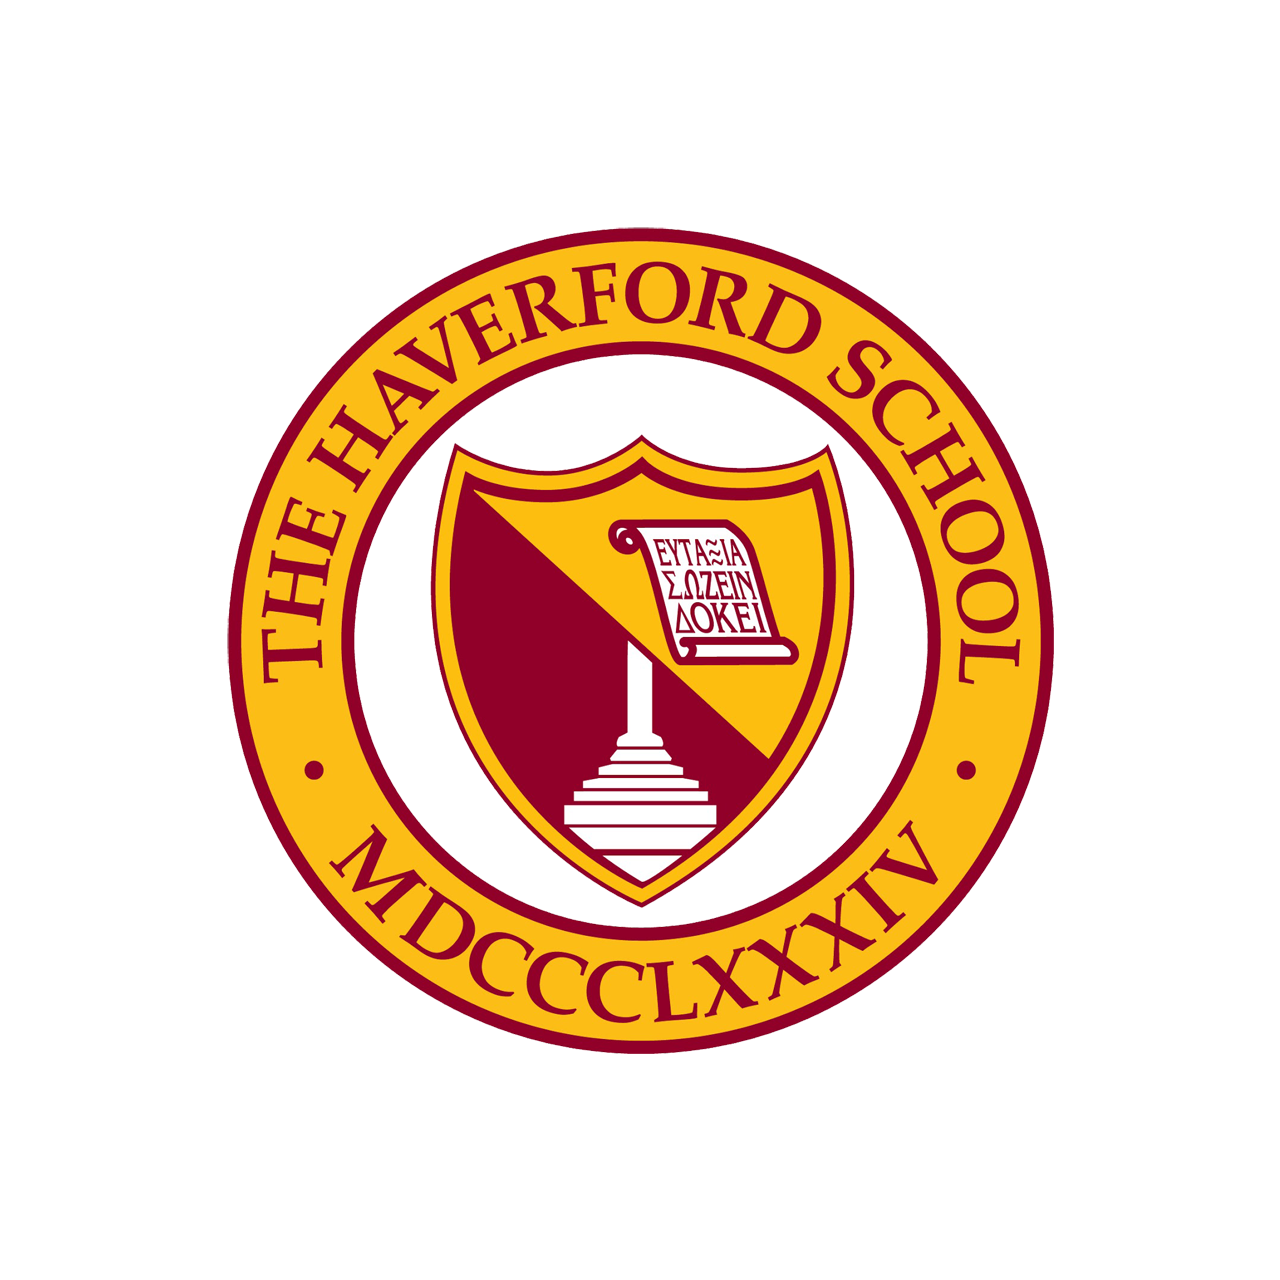 Haverford School